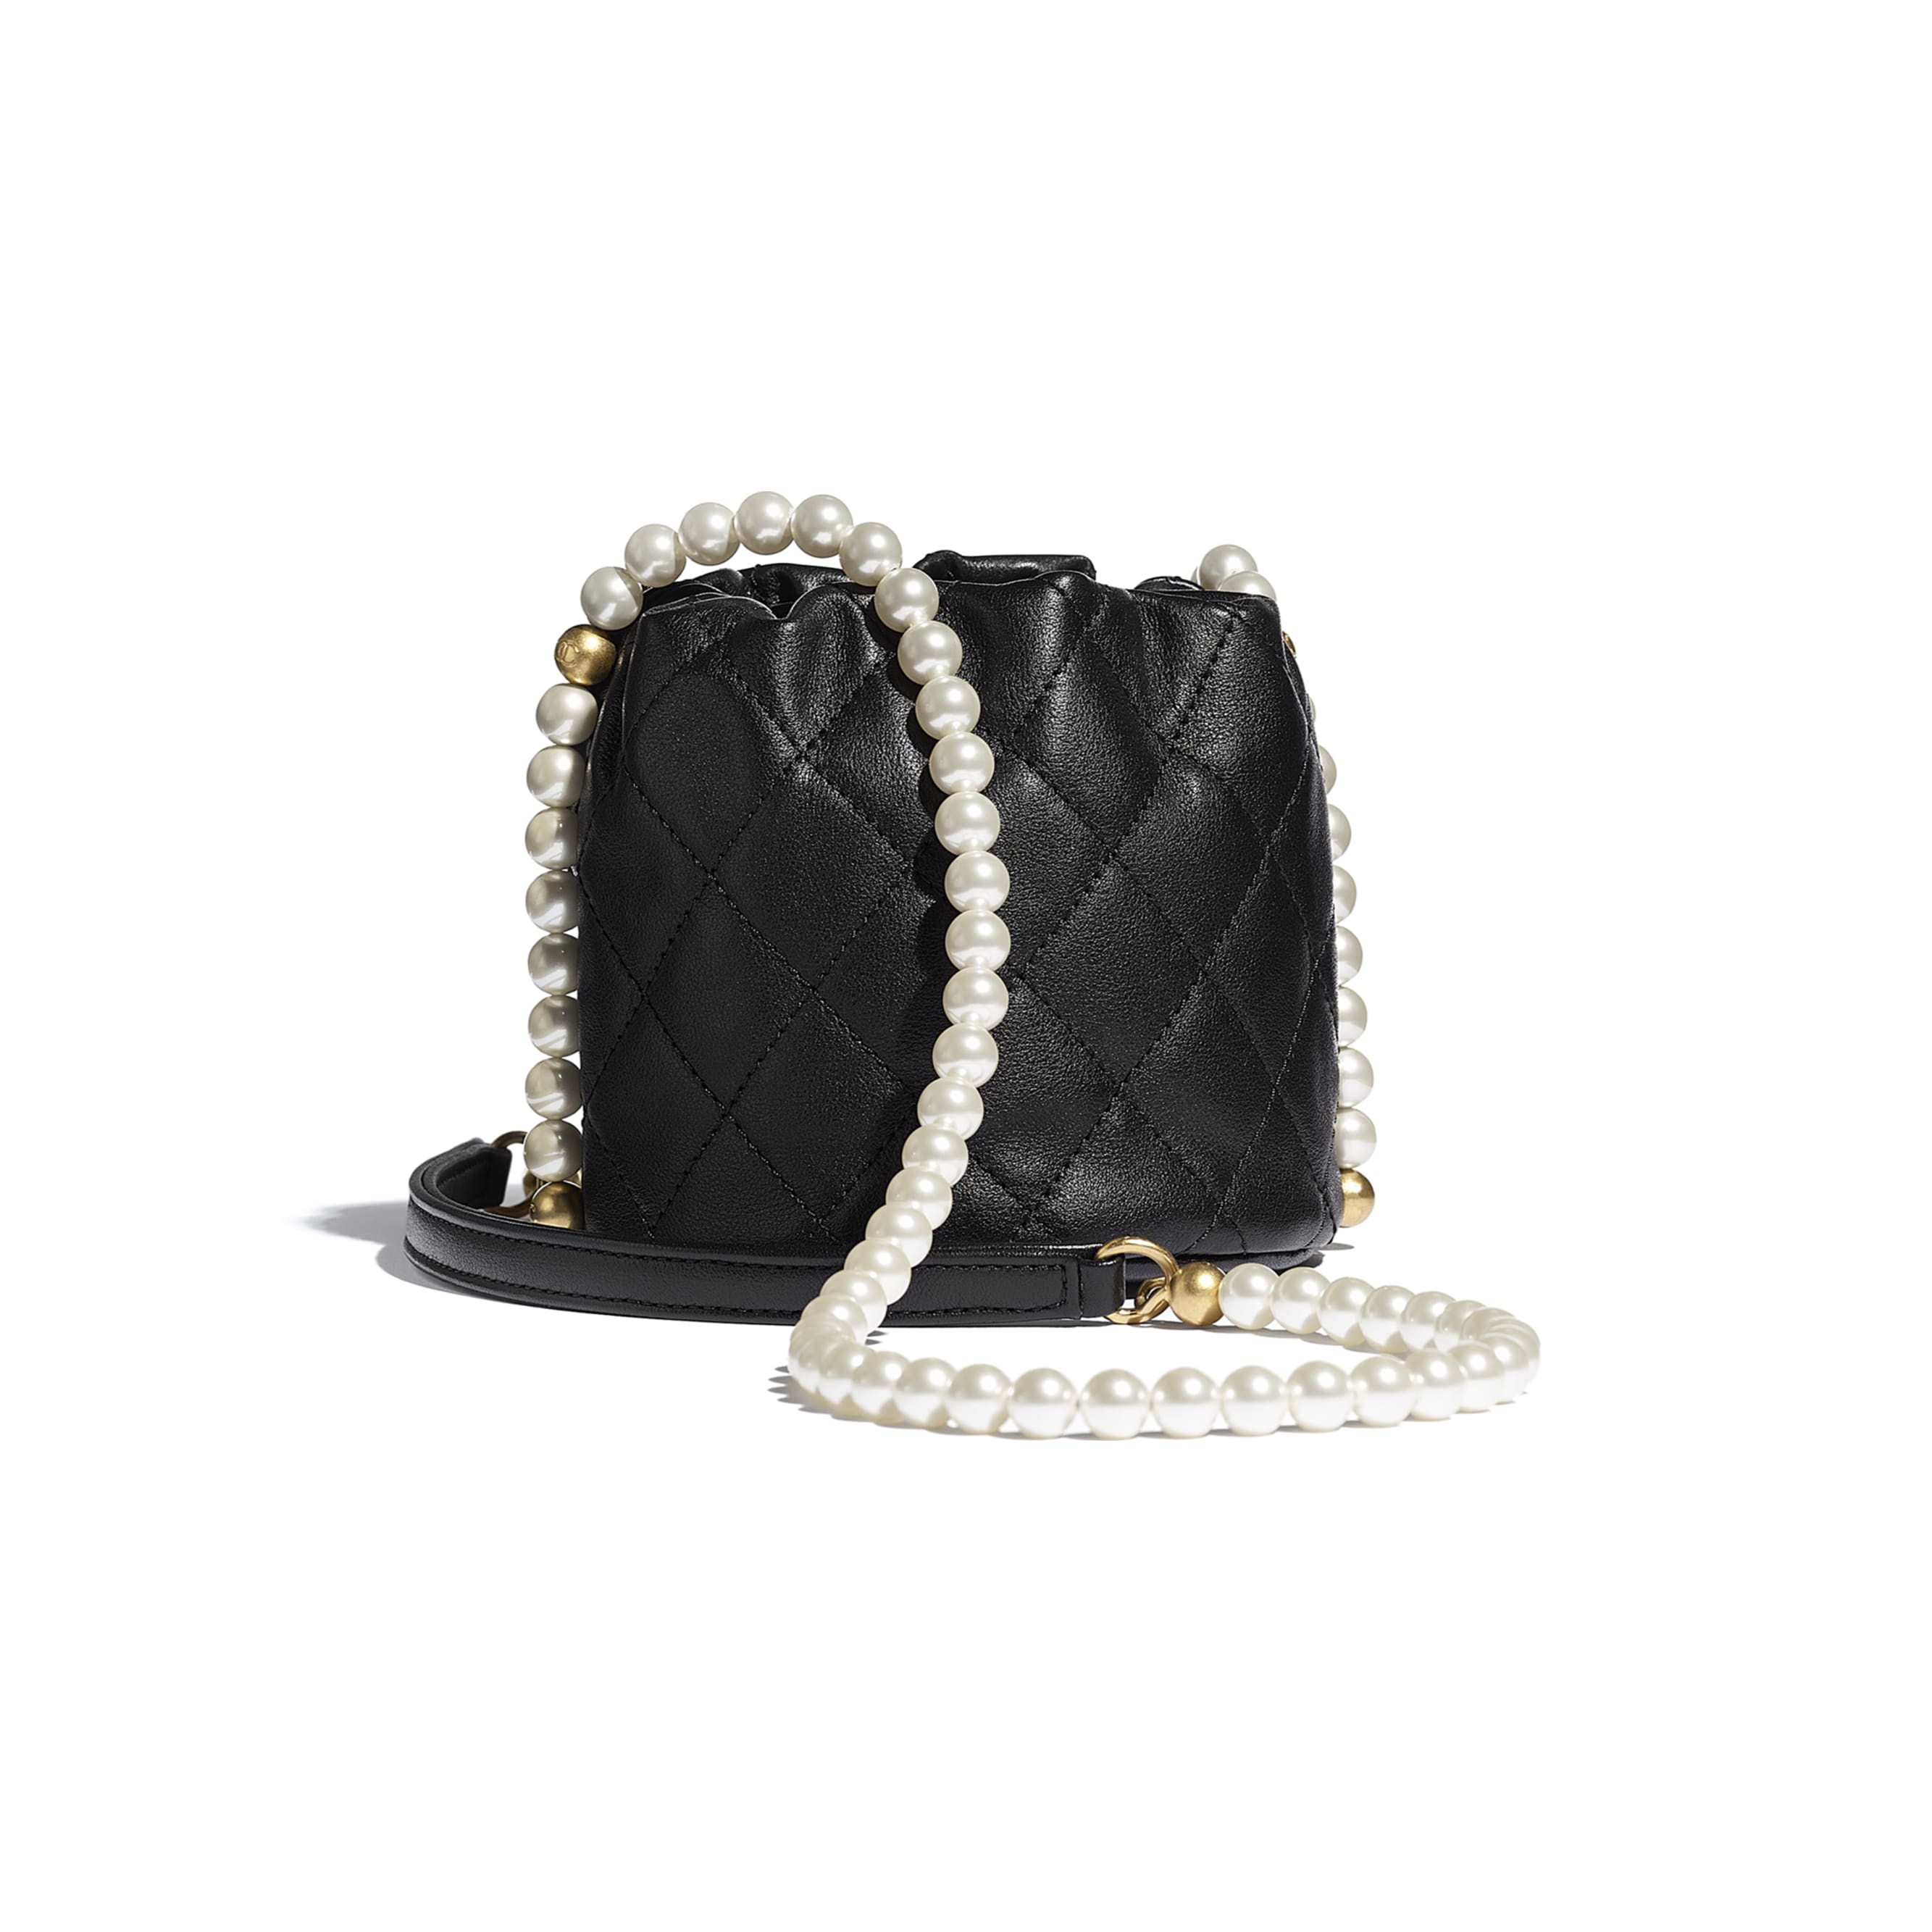 Mini Drawstring Bag - Black - Calfskin, Imitation Pearls & Gold-Tone Metal - CHANEL - Alternative view - see standard sized version